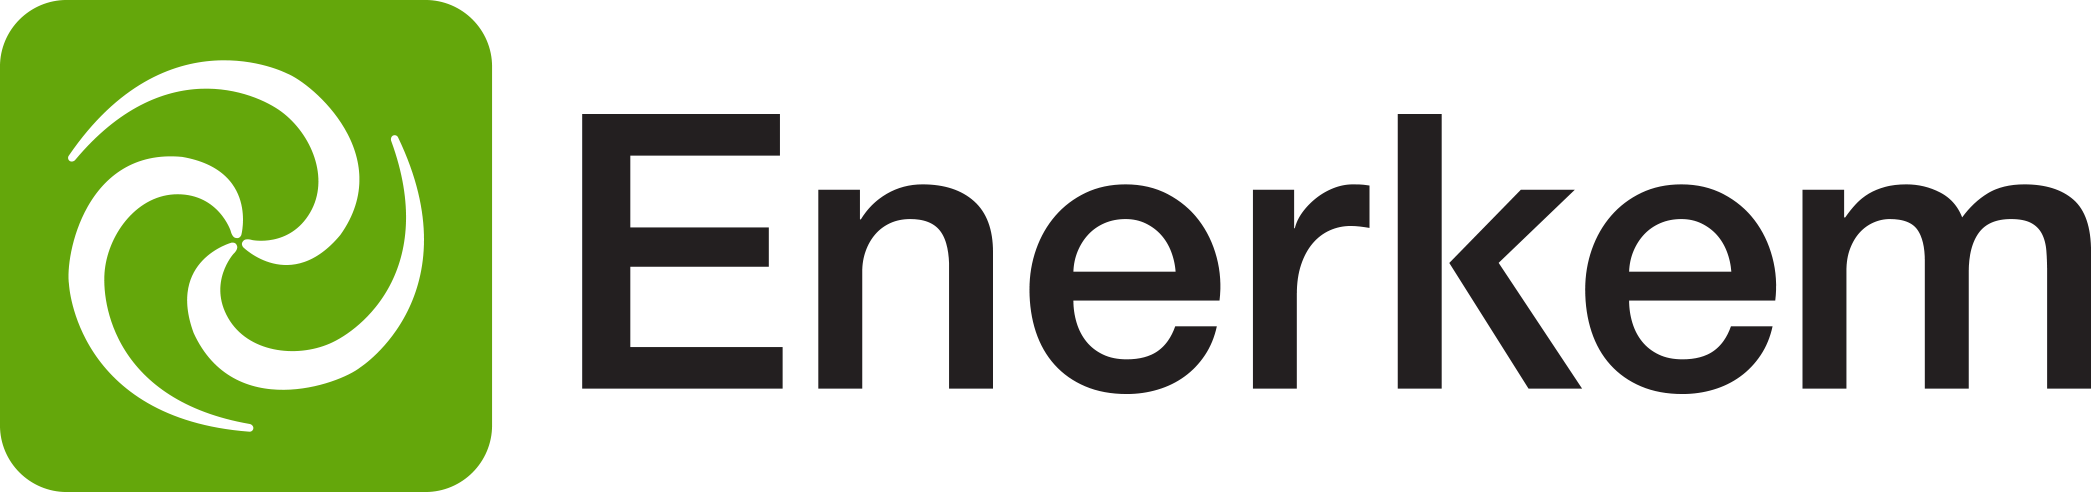 Enerkem: Investment rounds, top customers, partners and